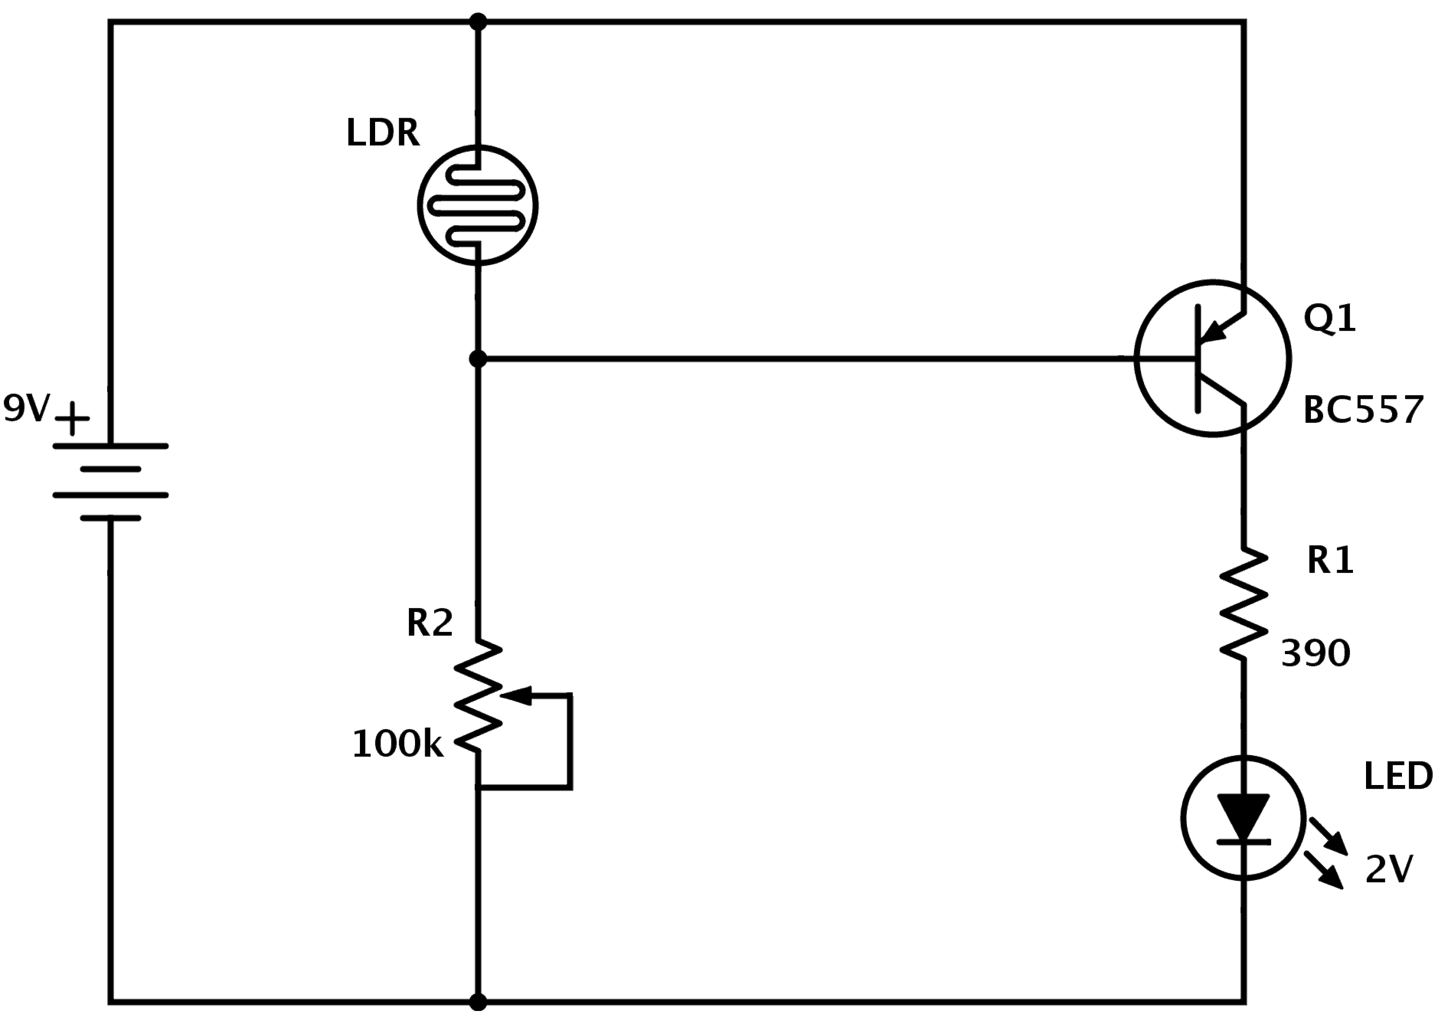 ldr circuit diagram build electronic circuits rh build electronic circuits com circuit diagram definition circuit diagram definition